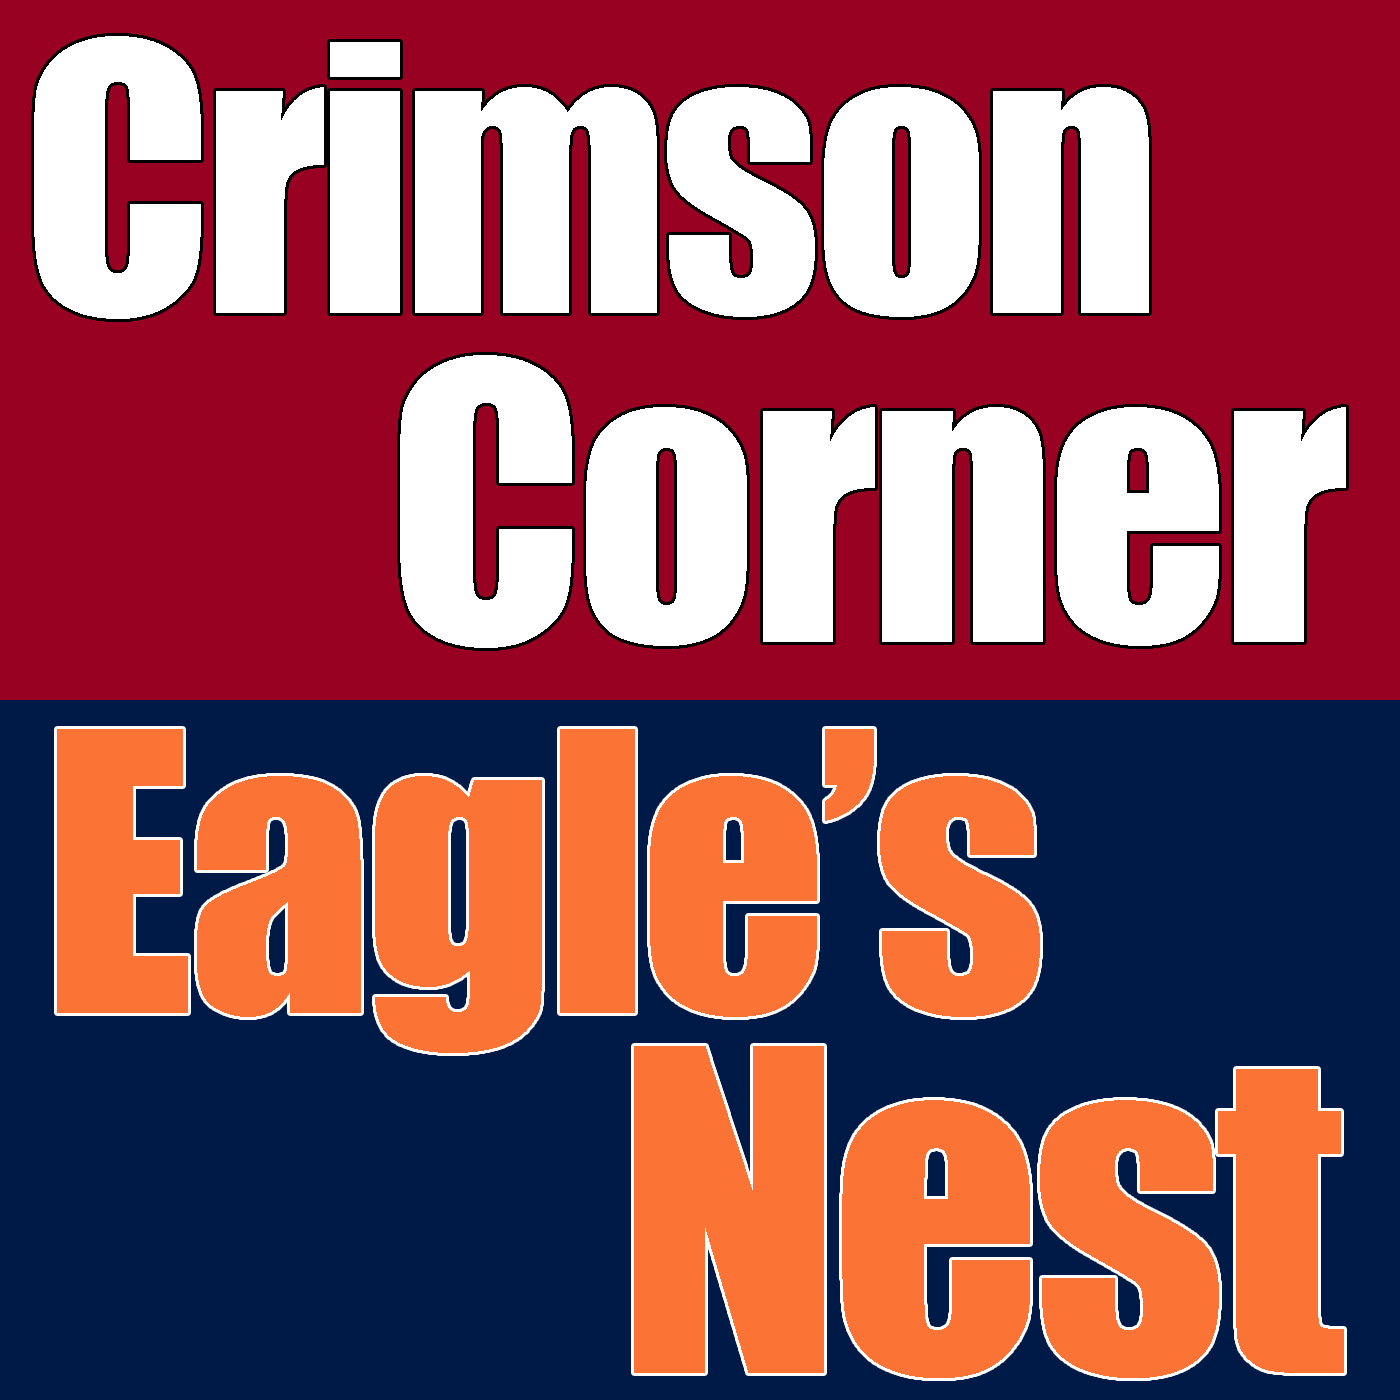 Crimson Corner Eagles Nest